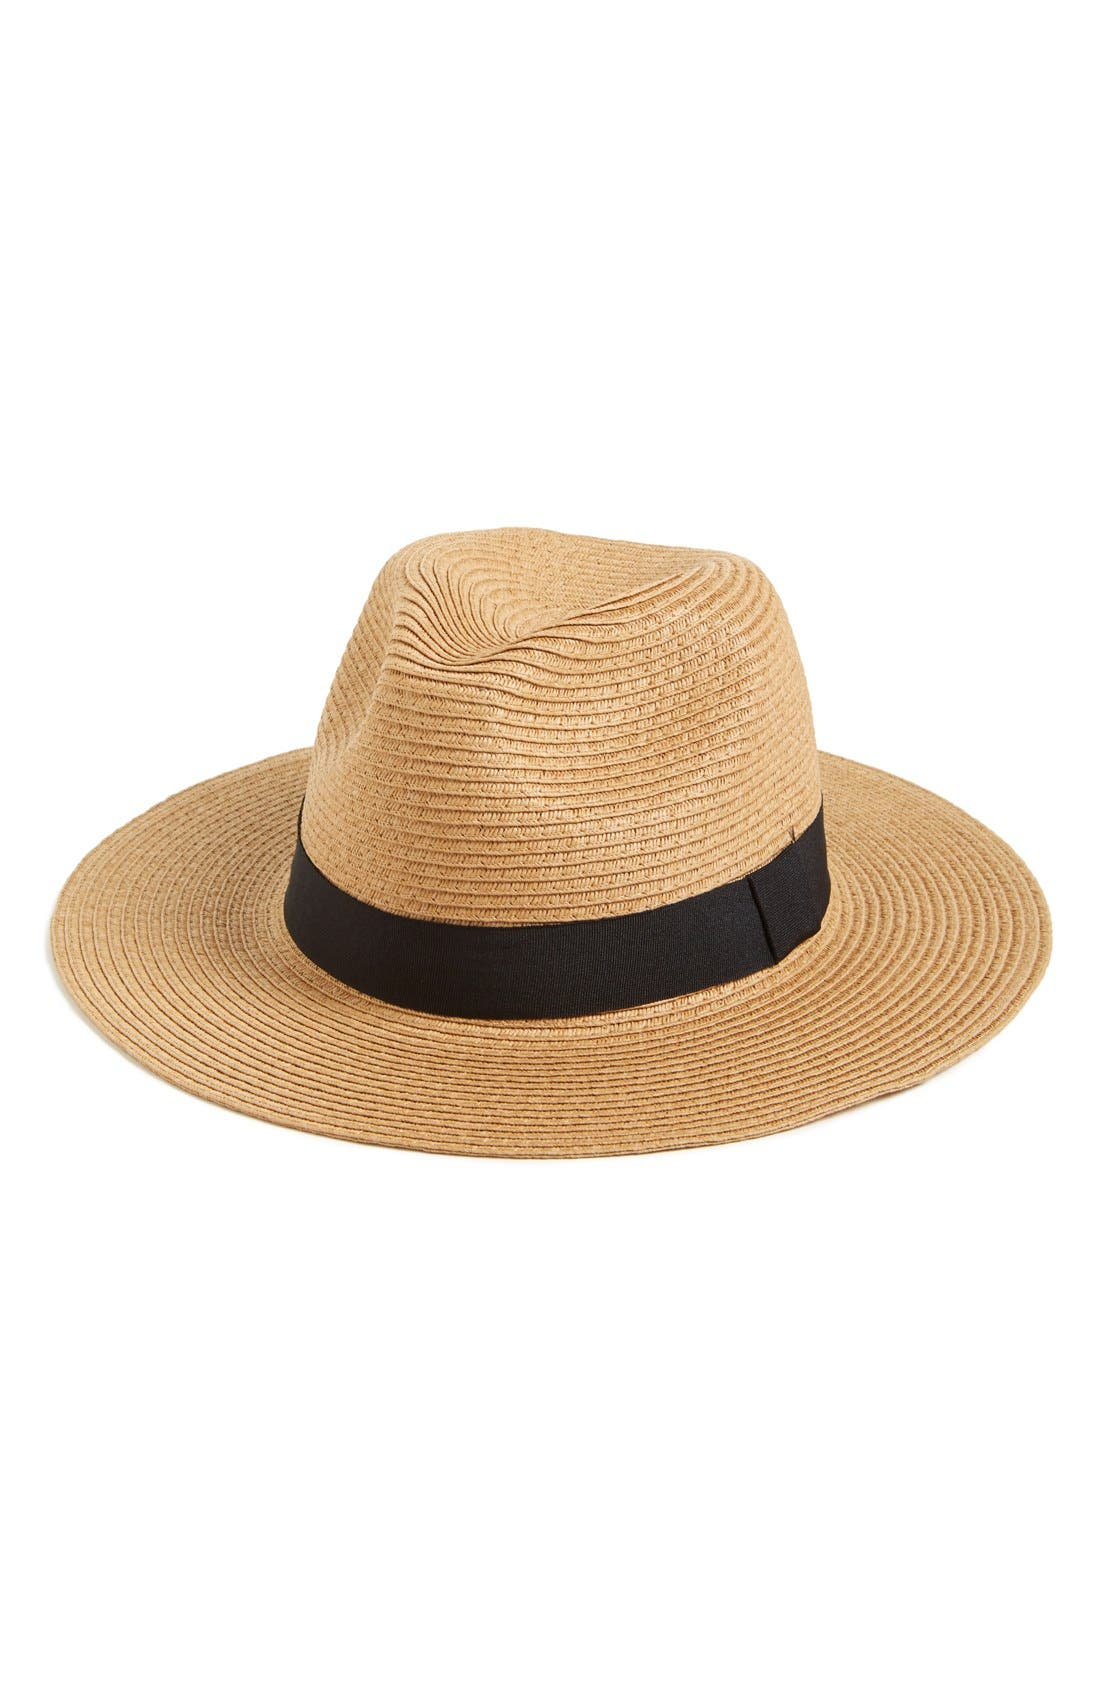 Main Image - Leith Floppy Straw Hat